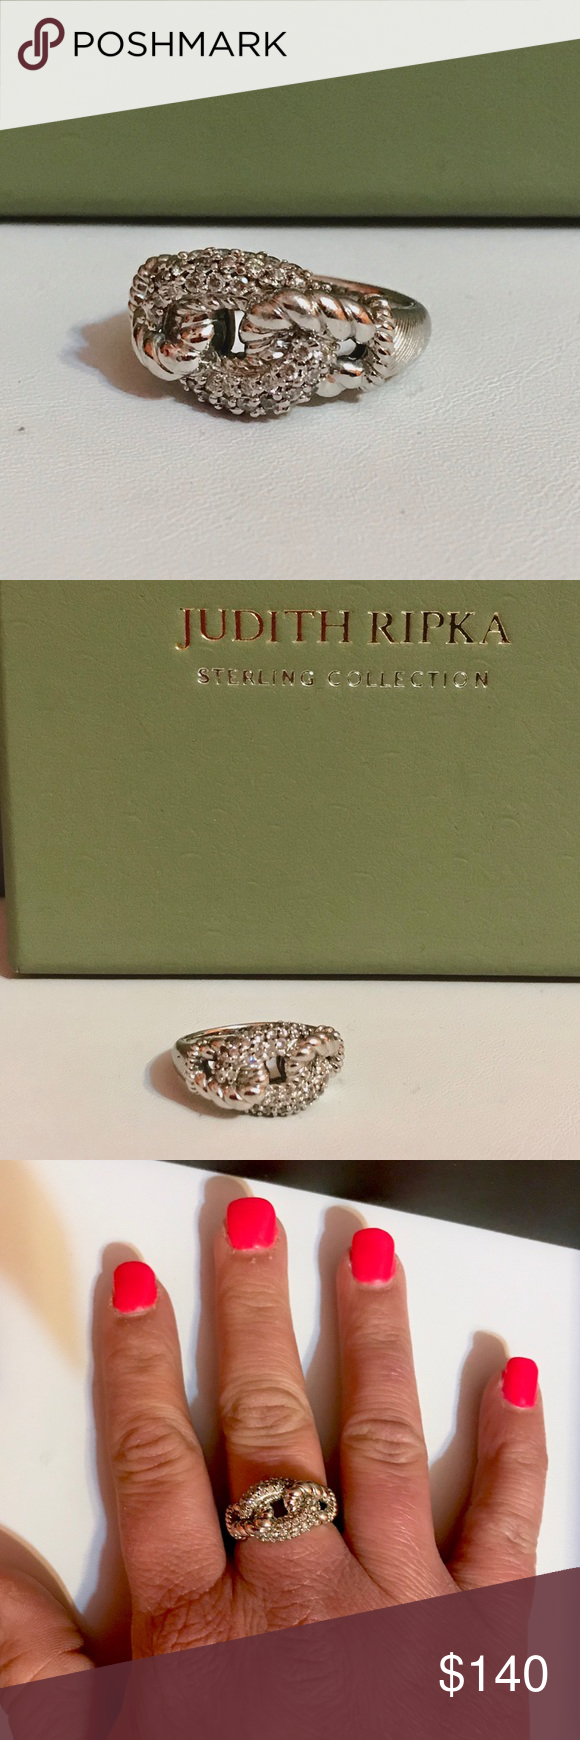 RIPKA Sterling silver pave' Curb link ring JUDITH RIPKA 925 SILVER DIAMONIQUE PAVE' CURB LINK RING, SIZE 7.  Excellent pre-owned condition n Bead-set, round Diamonique simulated diamonds are pave-set to sparkle along the interlocking, twisted curb link design of this sophisticated ring. A textured and polished ...